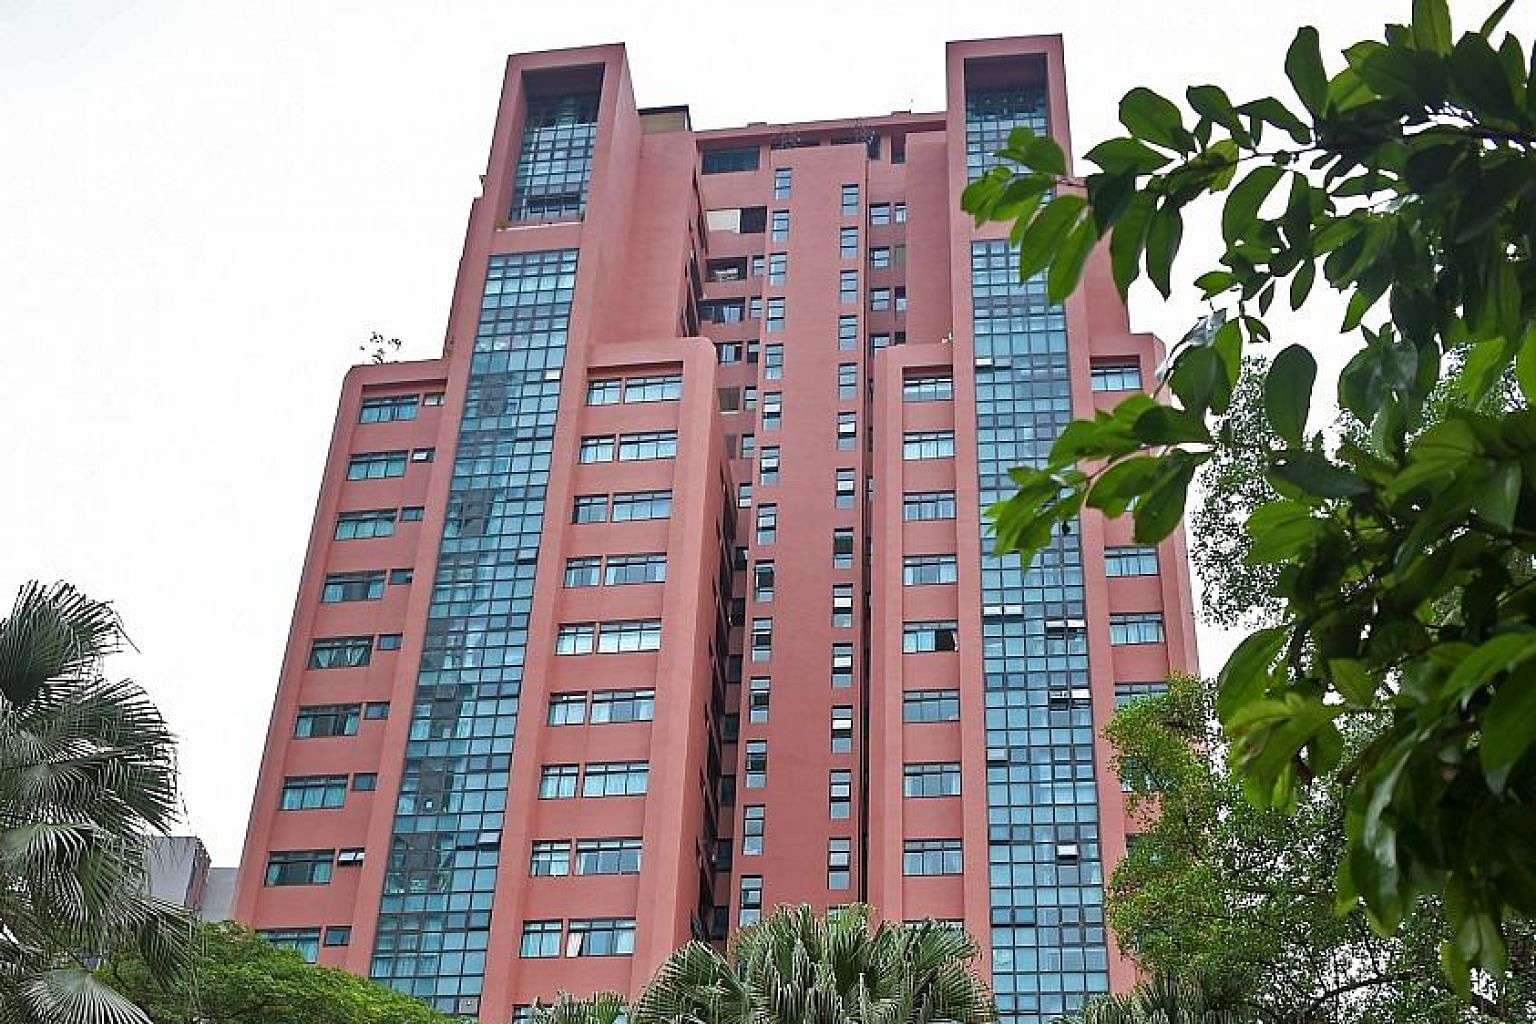 The 138-unit Leonie Gardens, situated in Leonie Hill in District 9, has 71 years left on its 99-year lease. It can be developed into around 540 units of about 70 sq m each, or 380 units of about 100 sq m each, said marketing agent Huttons Asia.